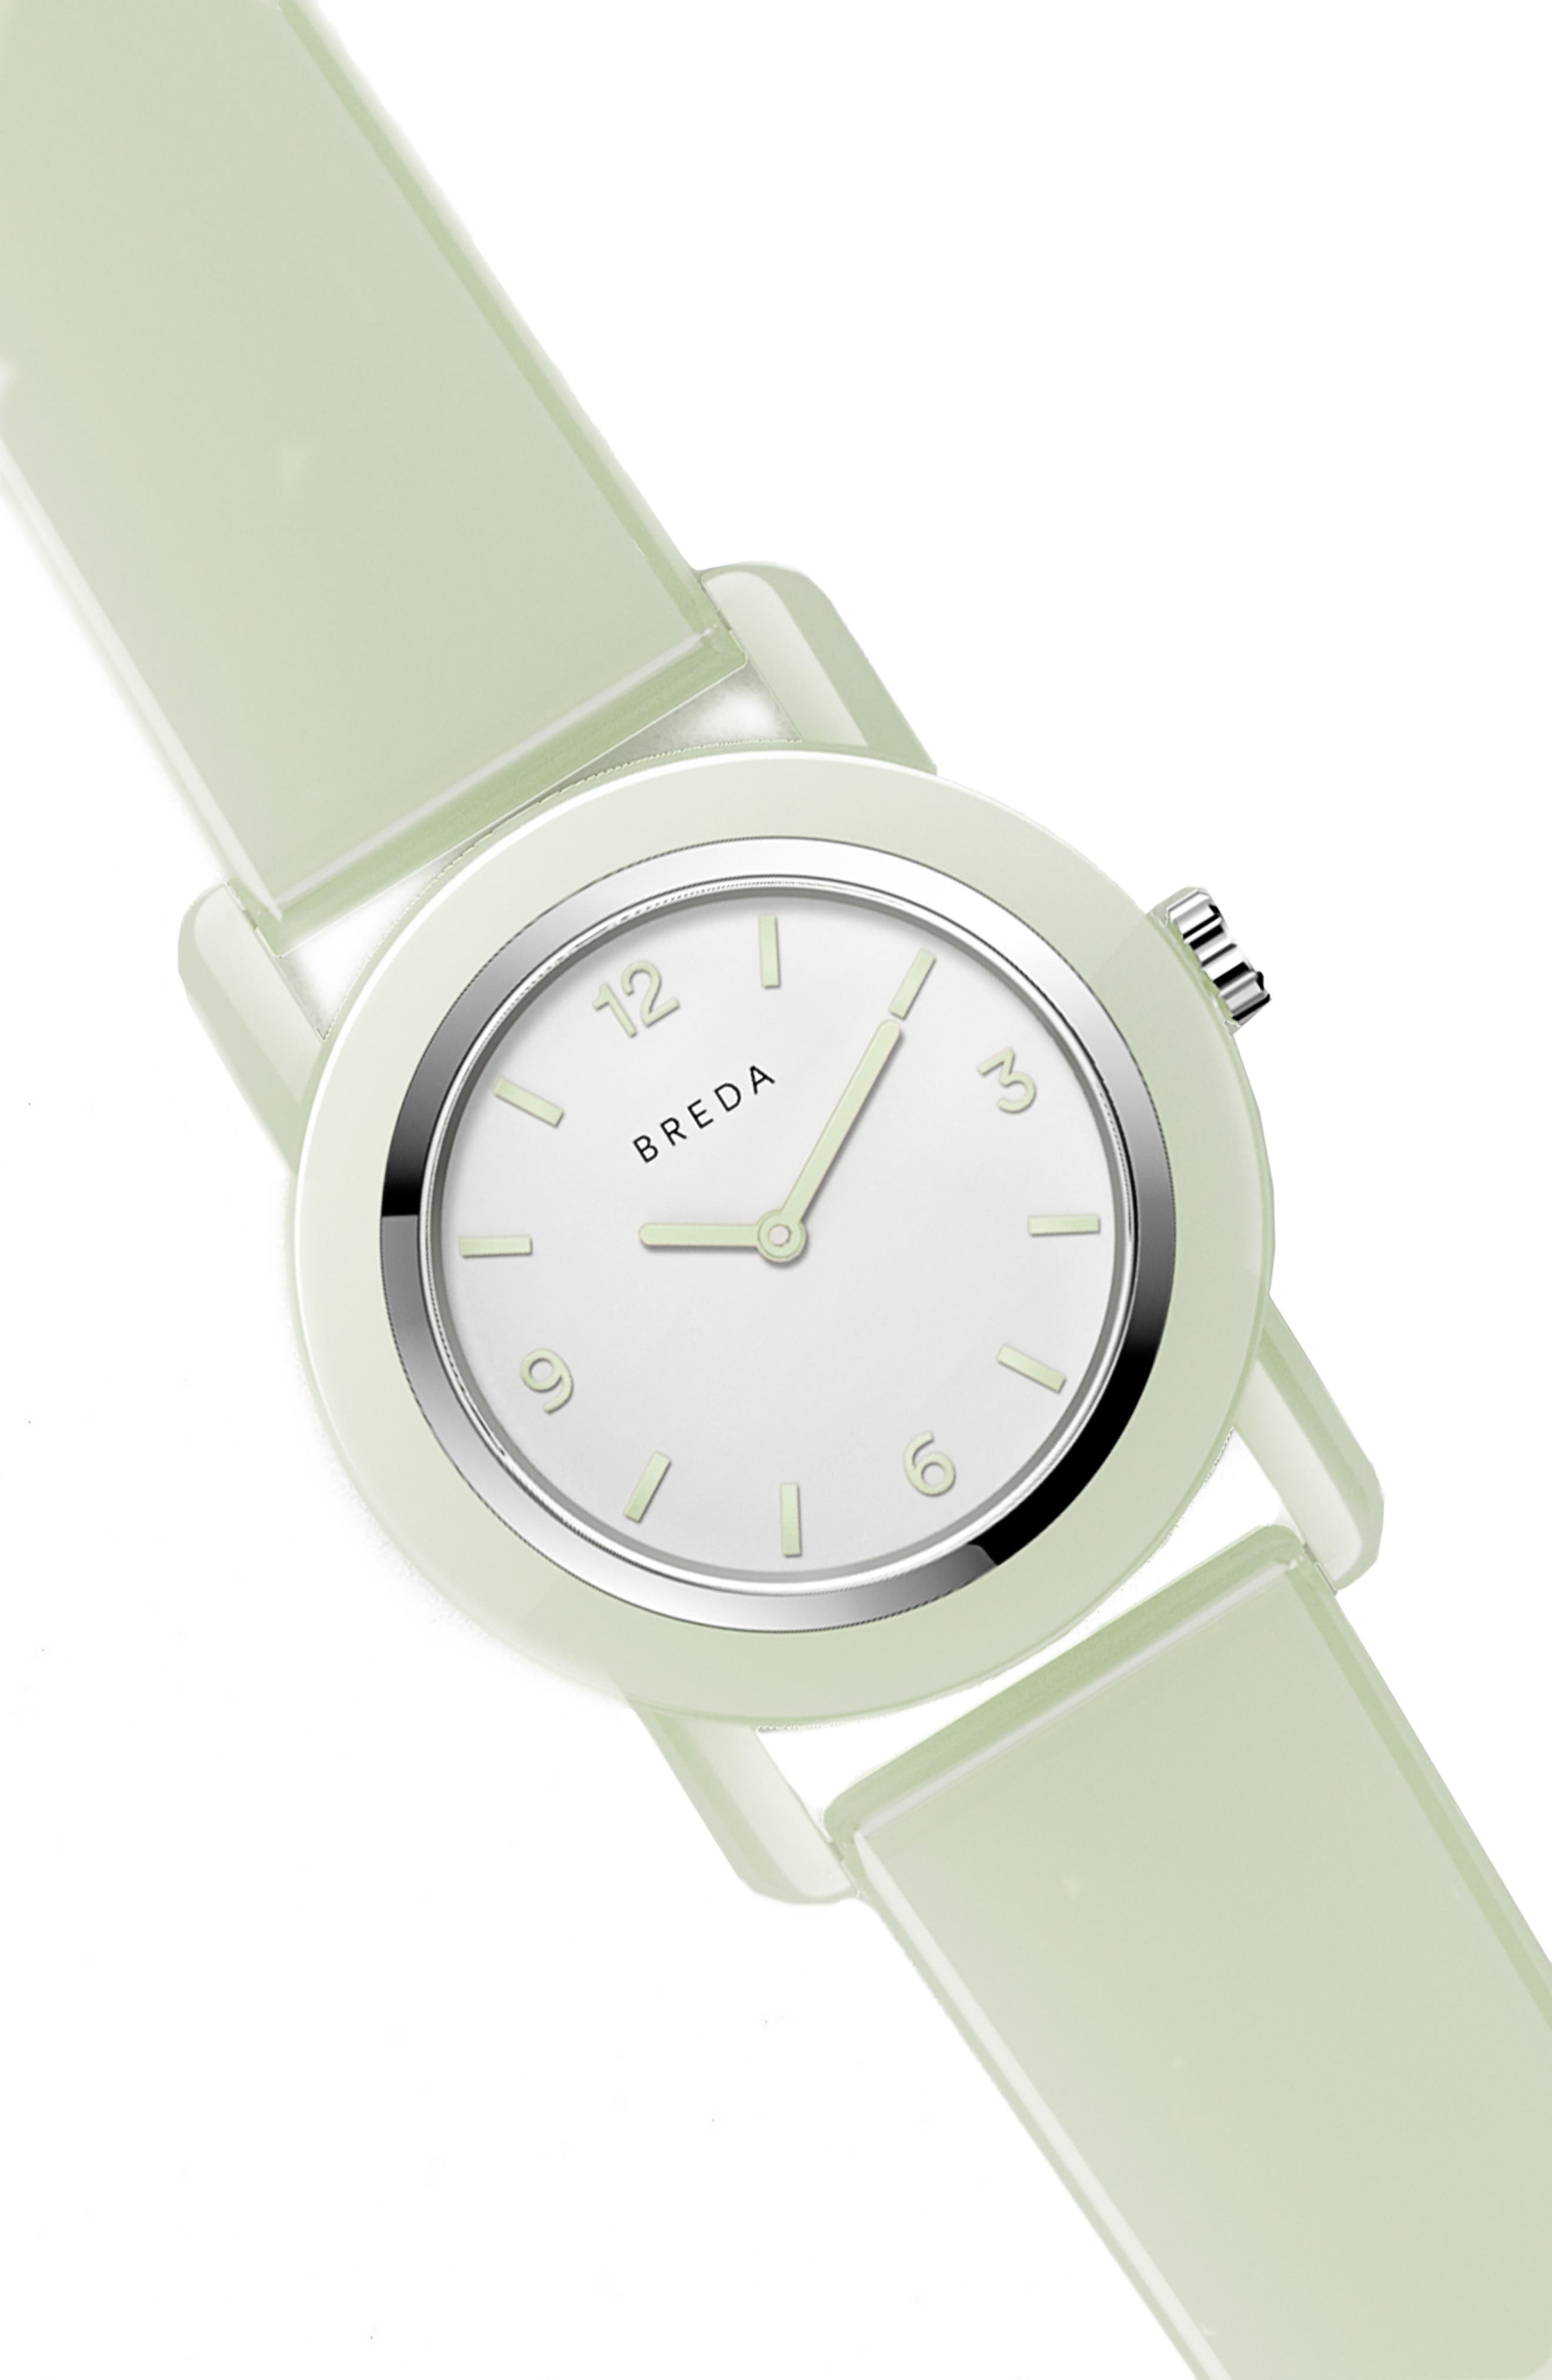 Play Glow In The Dark Rubber Strap Watch